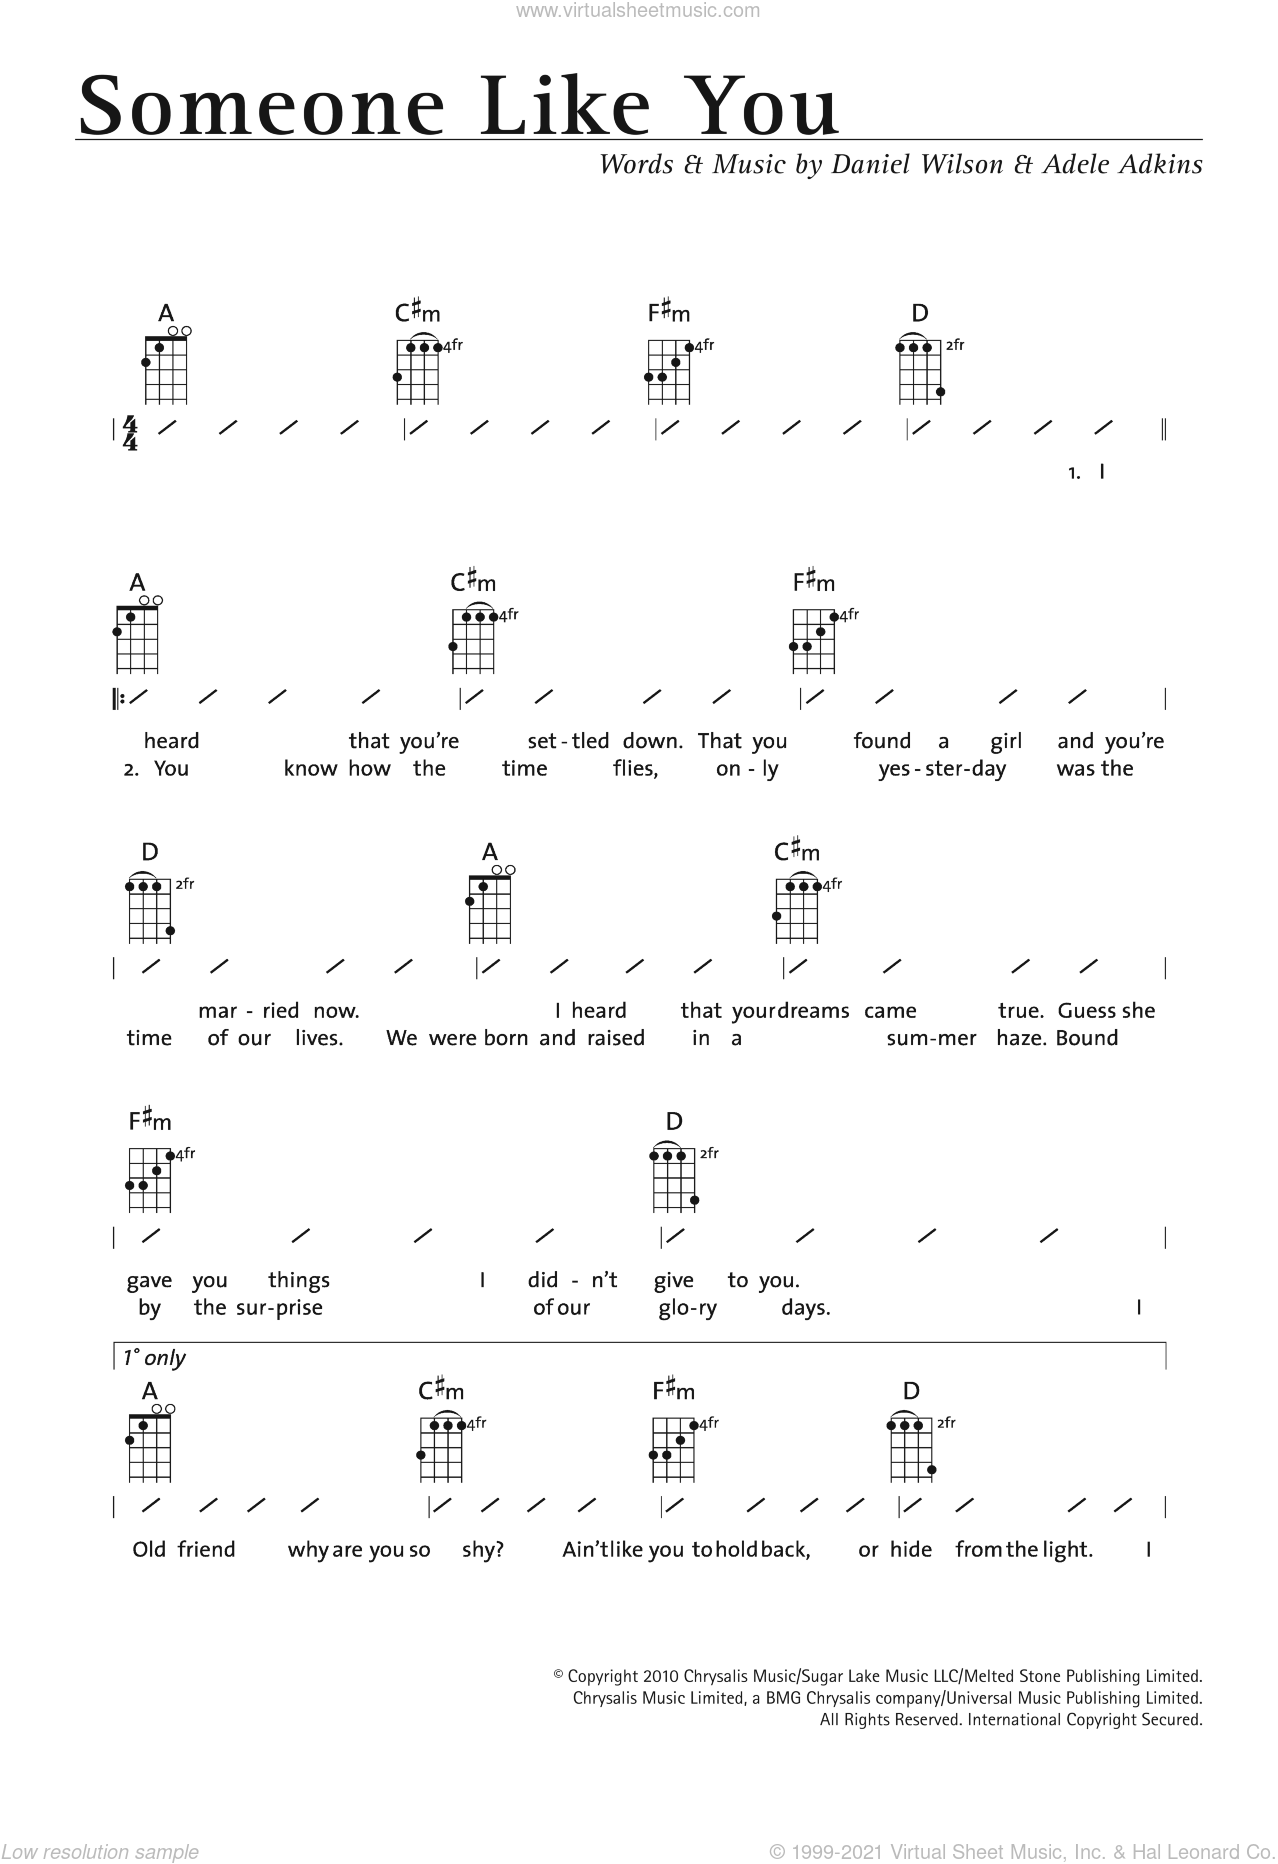 Someone Like You Sheet Music For Ukulele Chords By Adele Adkins And